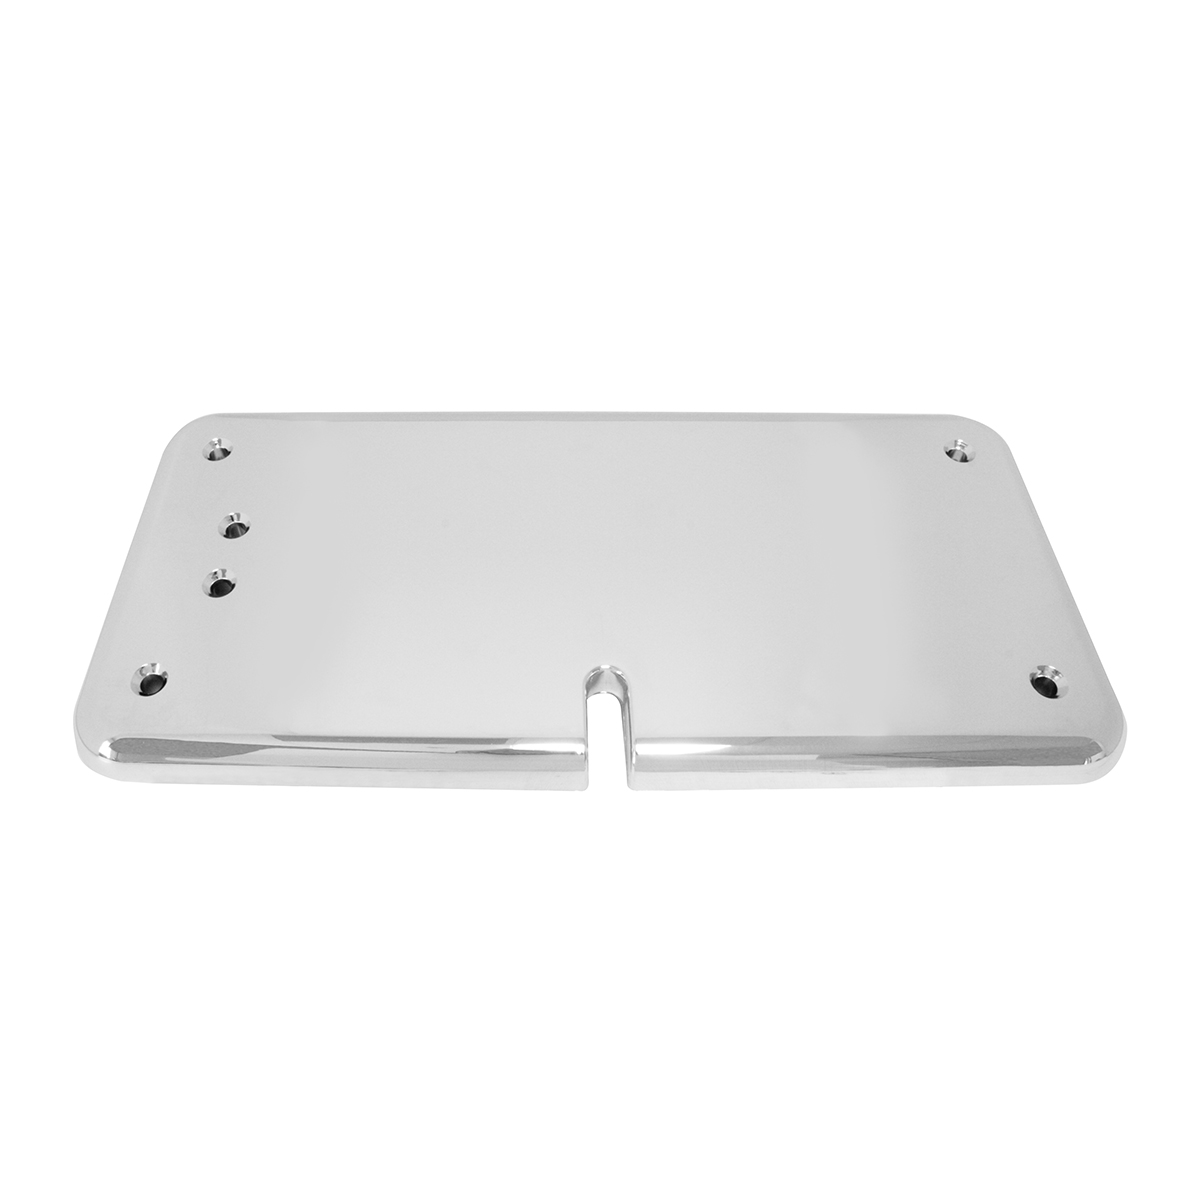 CB Radio Trim Plate for Peterbilt - Grand General - Auto